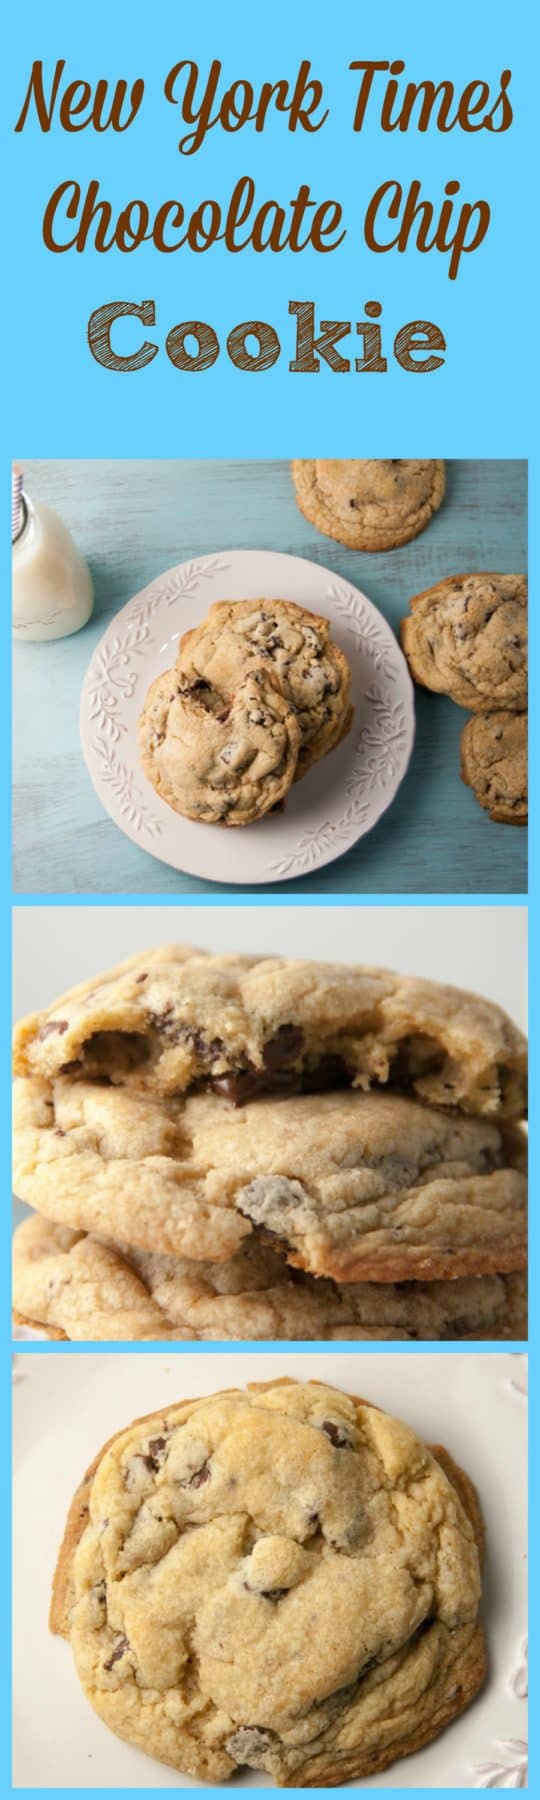 New York Times Chocolate Chip Cookie - Boston Girl Bakes